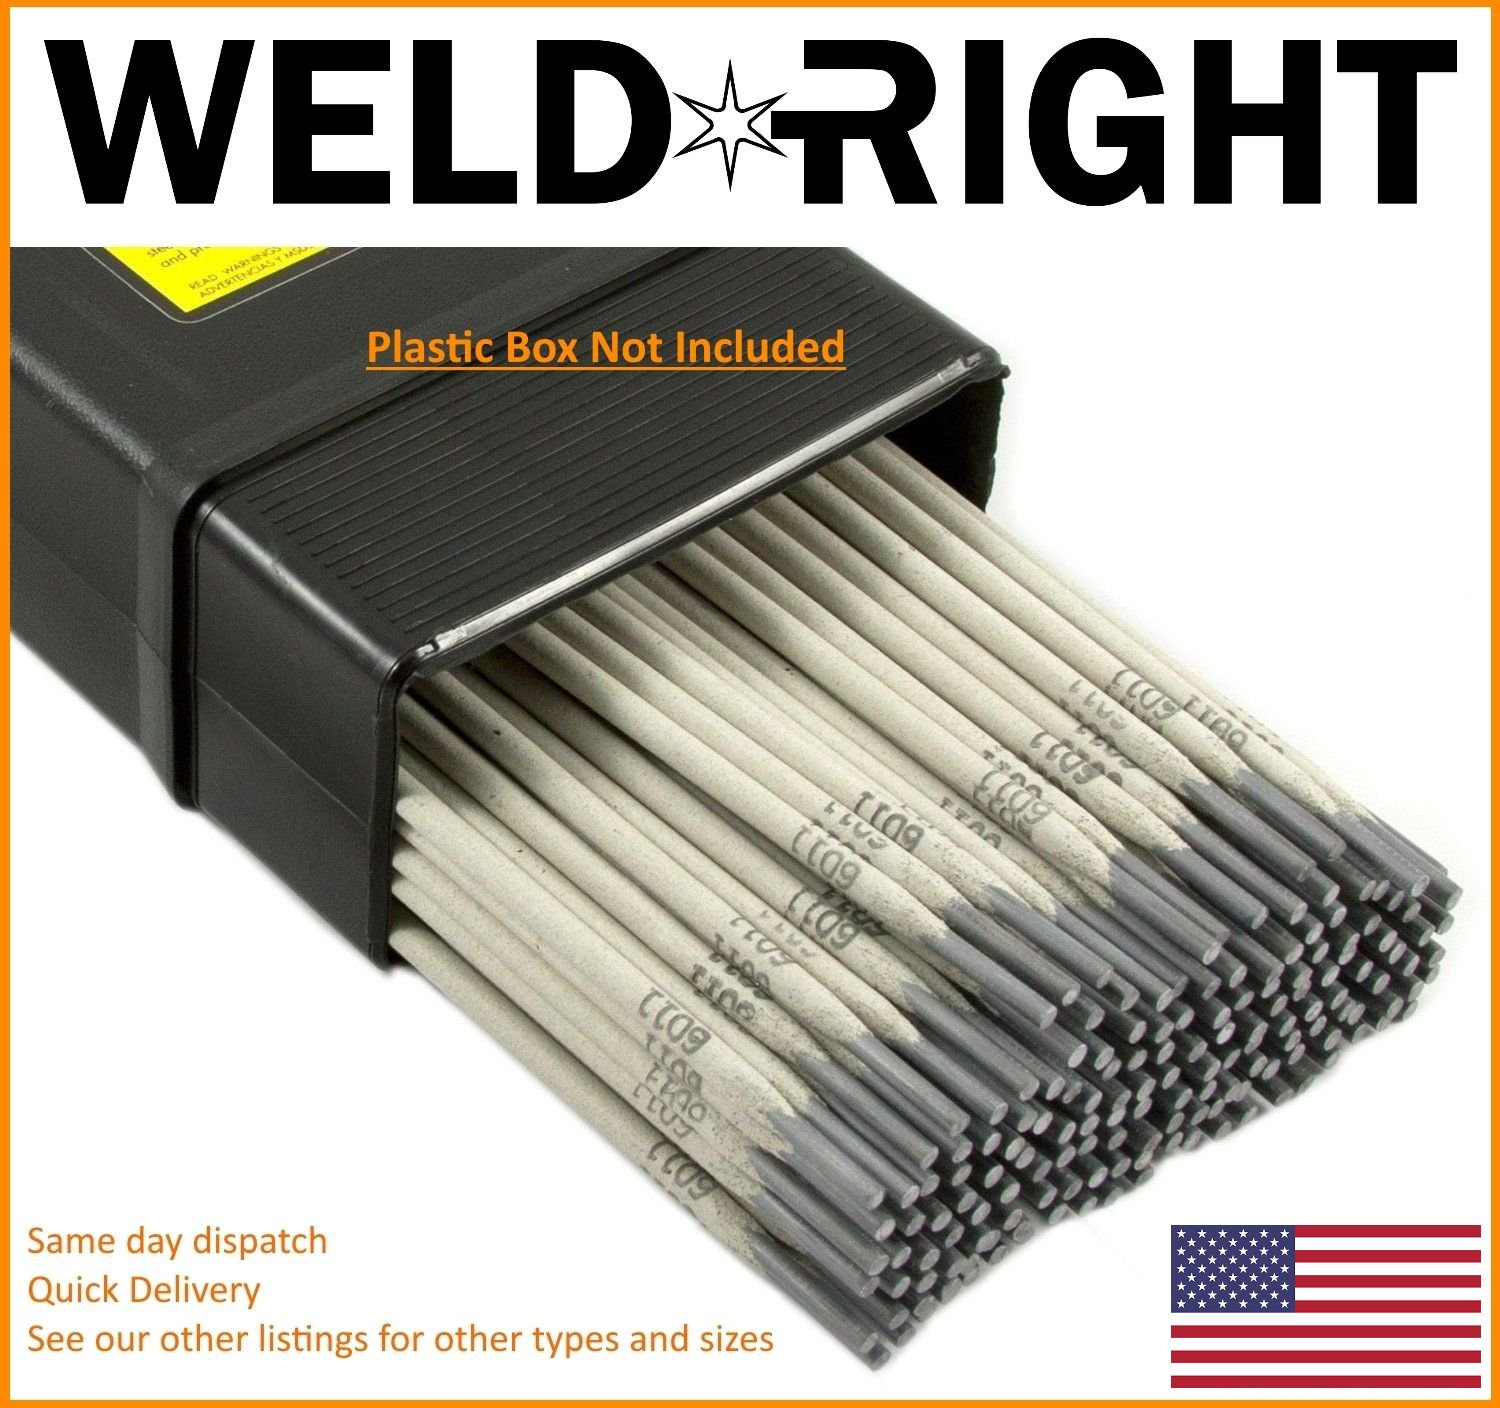 Weld Right General Purpose E6013 Arc Welding Electrodes Rods 1/16's - 1.6mm x 10-100 Qtys